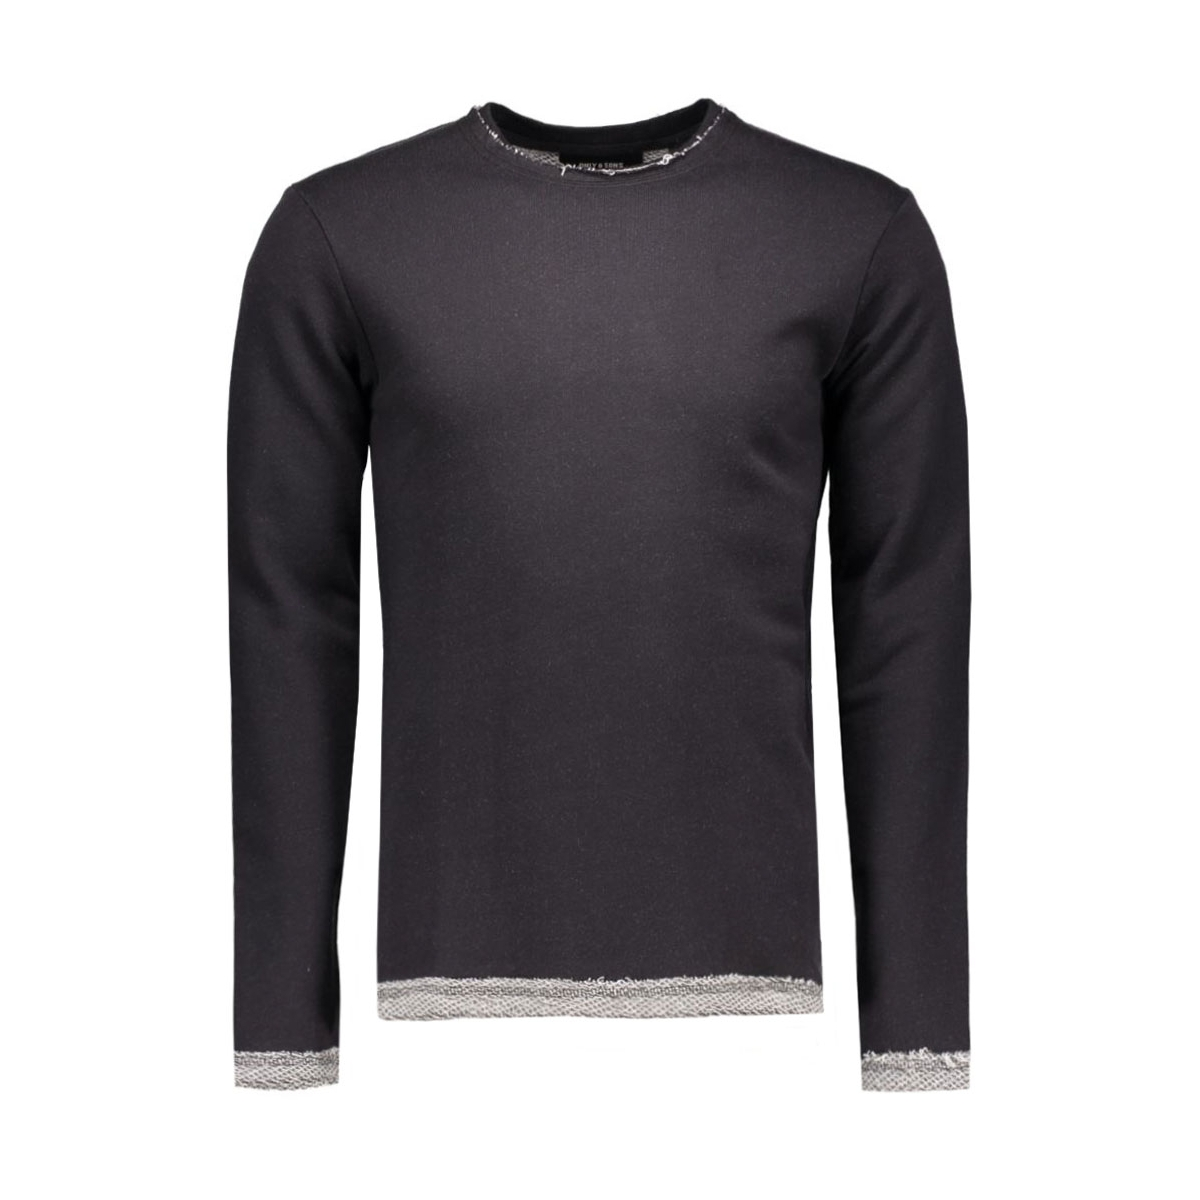 onsfrode crew neck 22004019 only & sons sweater black